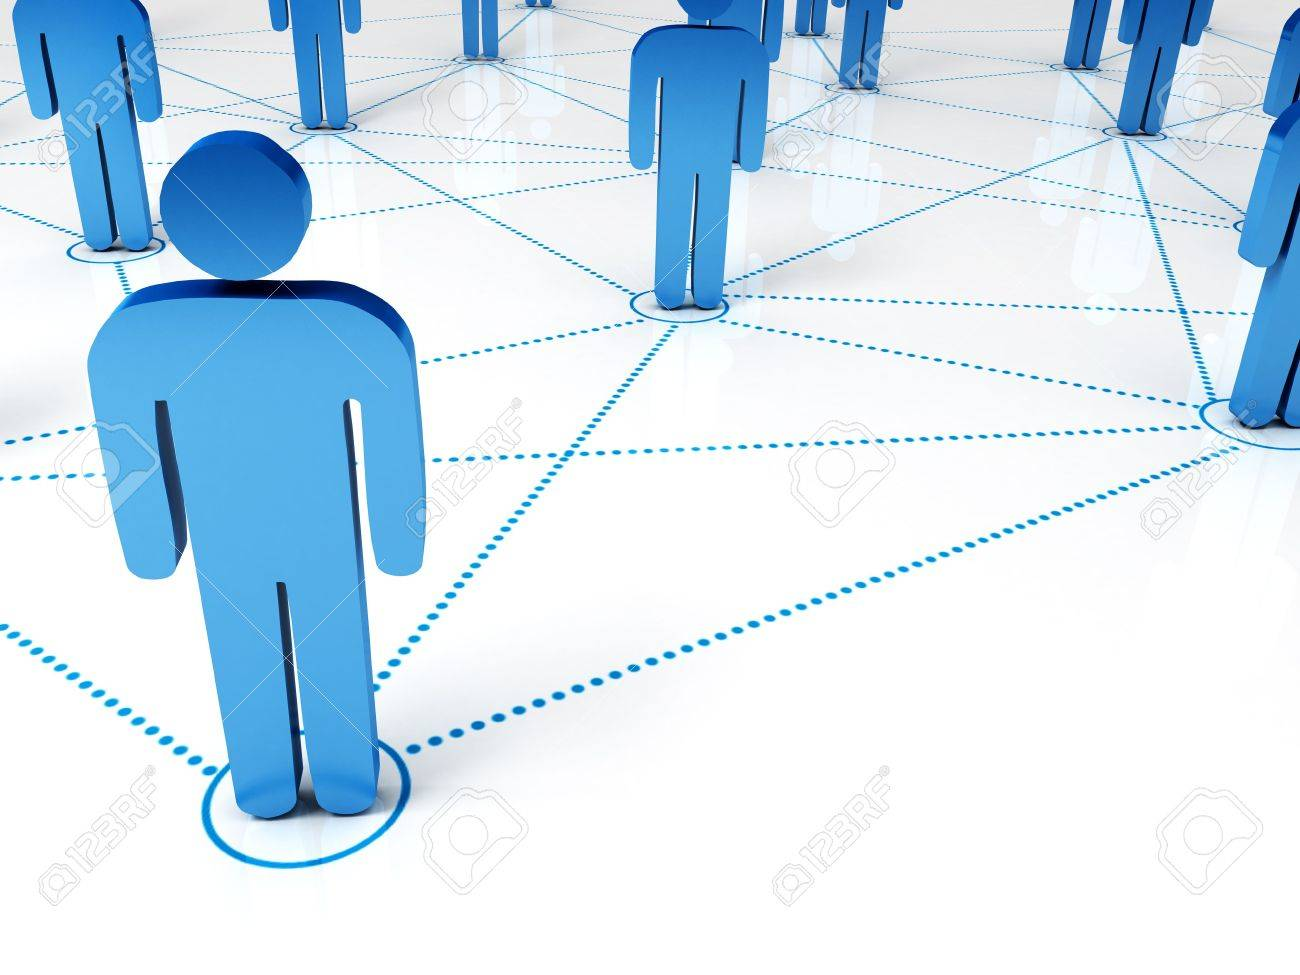 3d render of connected people symbols Stock Photo - 7975852